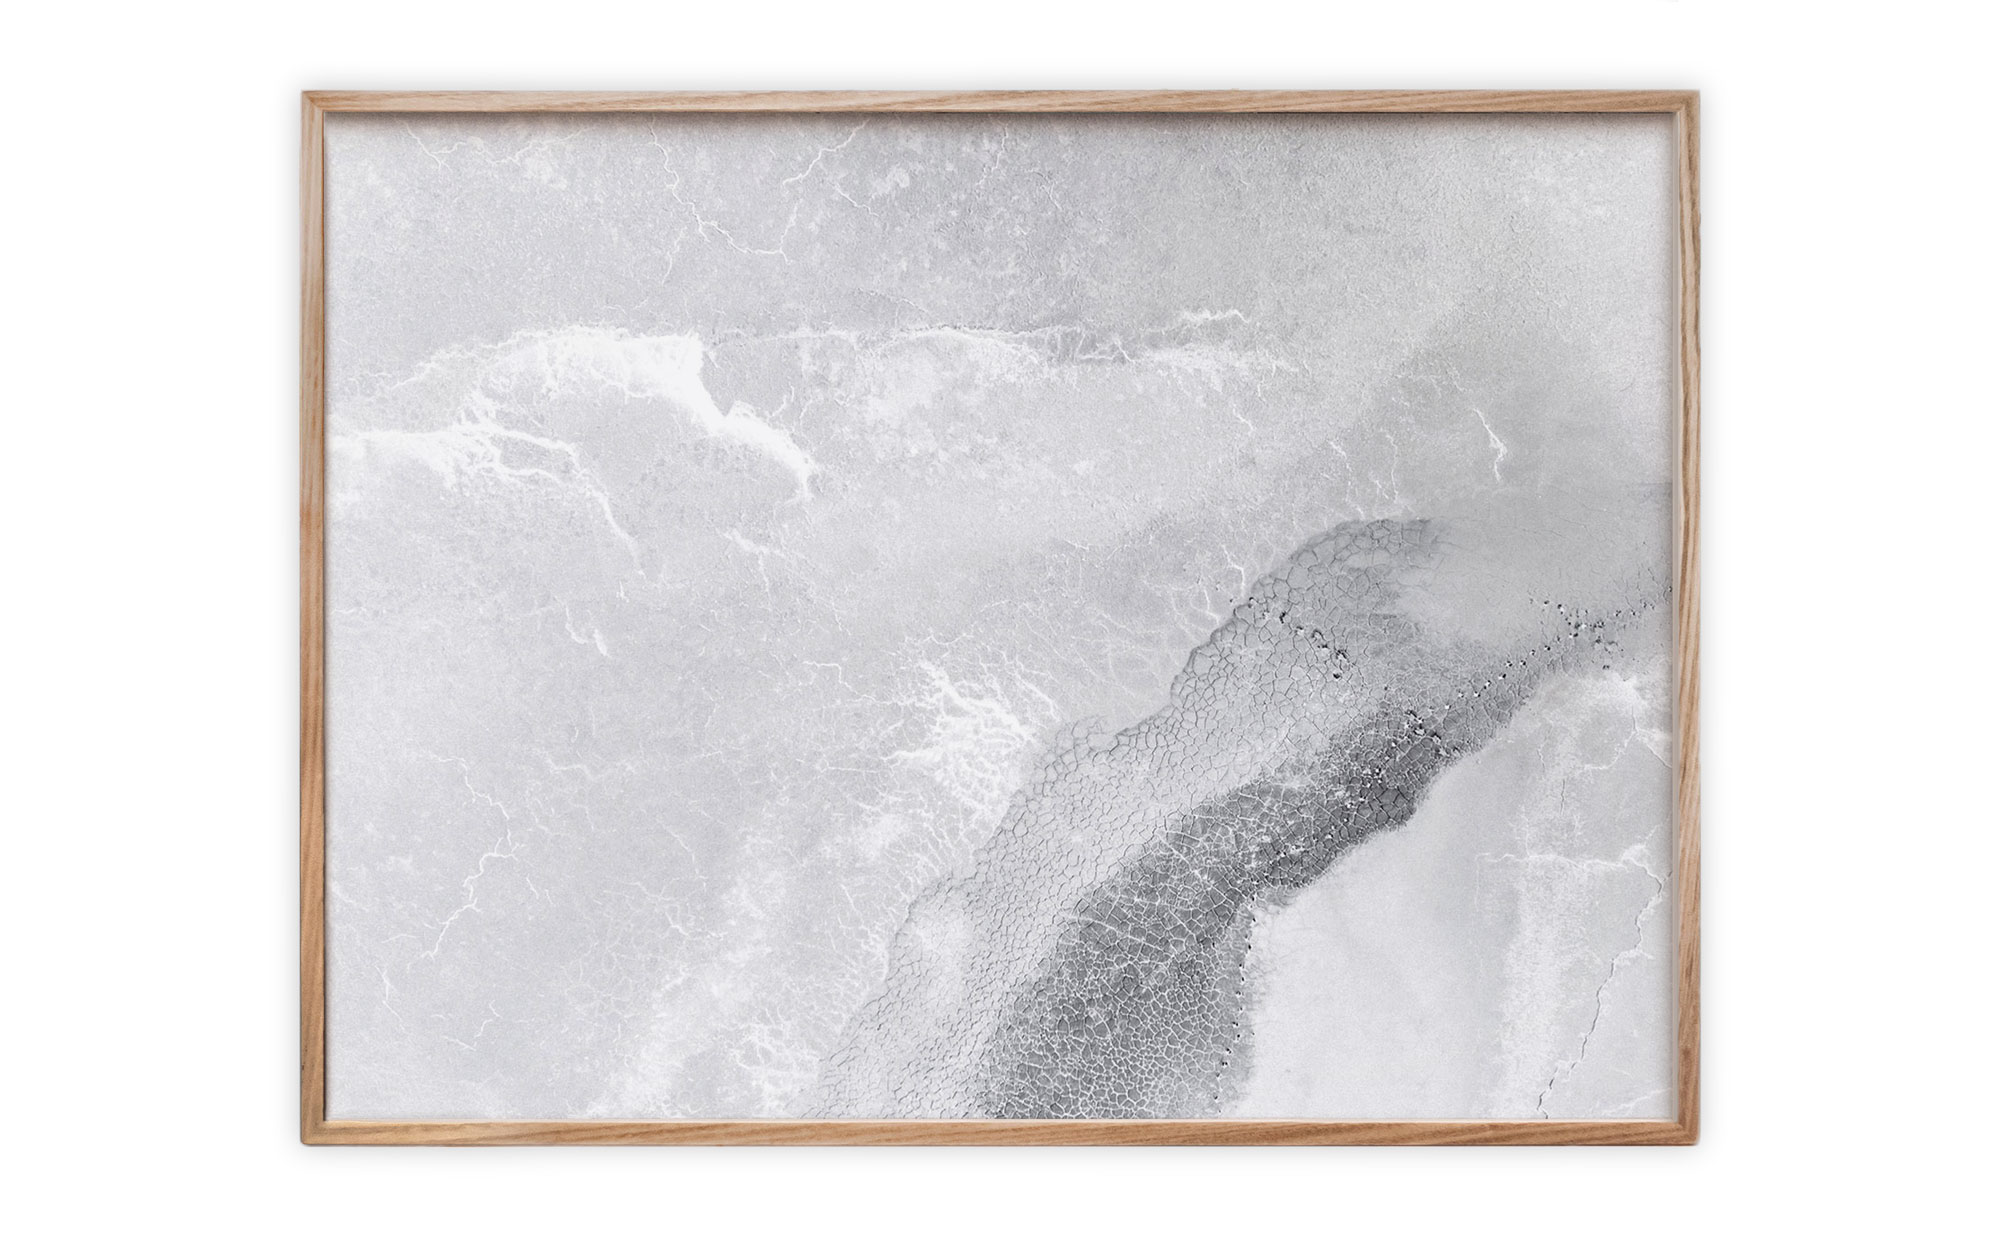 Maegan_Brown_Salt_Stone_05_Framed_Natural.jpg